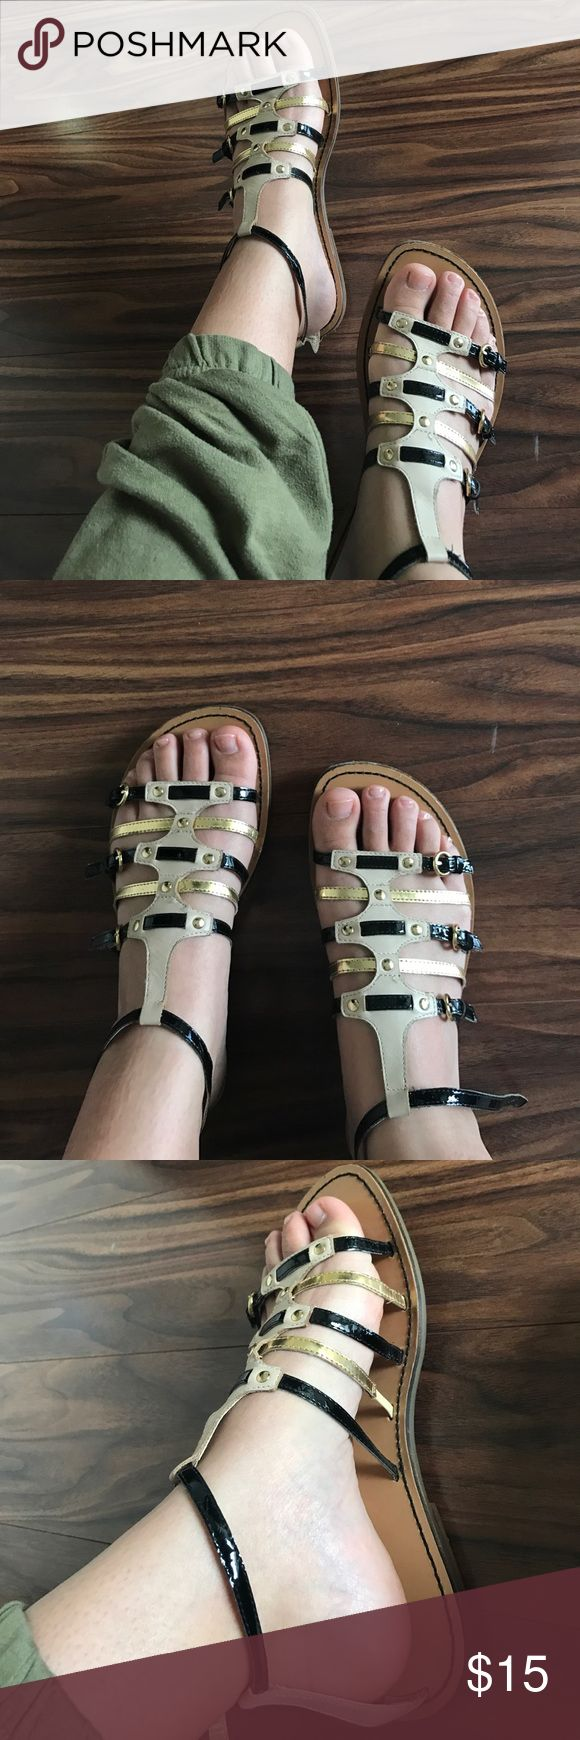 🔥SALE🔥 guess Marciano 8.5 gladiator sandal Not sure if these are real or faux leather. They are cream black and gold in size 8.5. Super cute! Bundle with 2 more items for 30% off. Send offers! Guess by Marciano Shoes Sandals